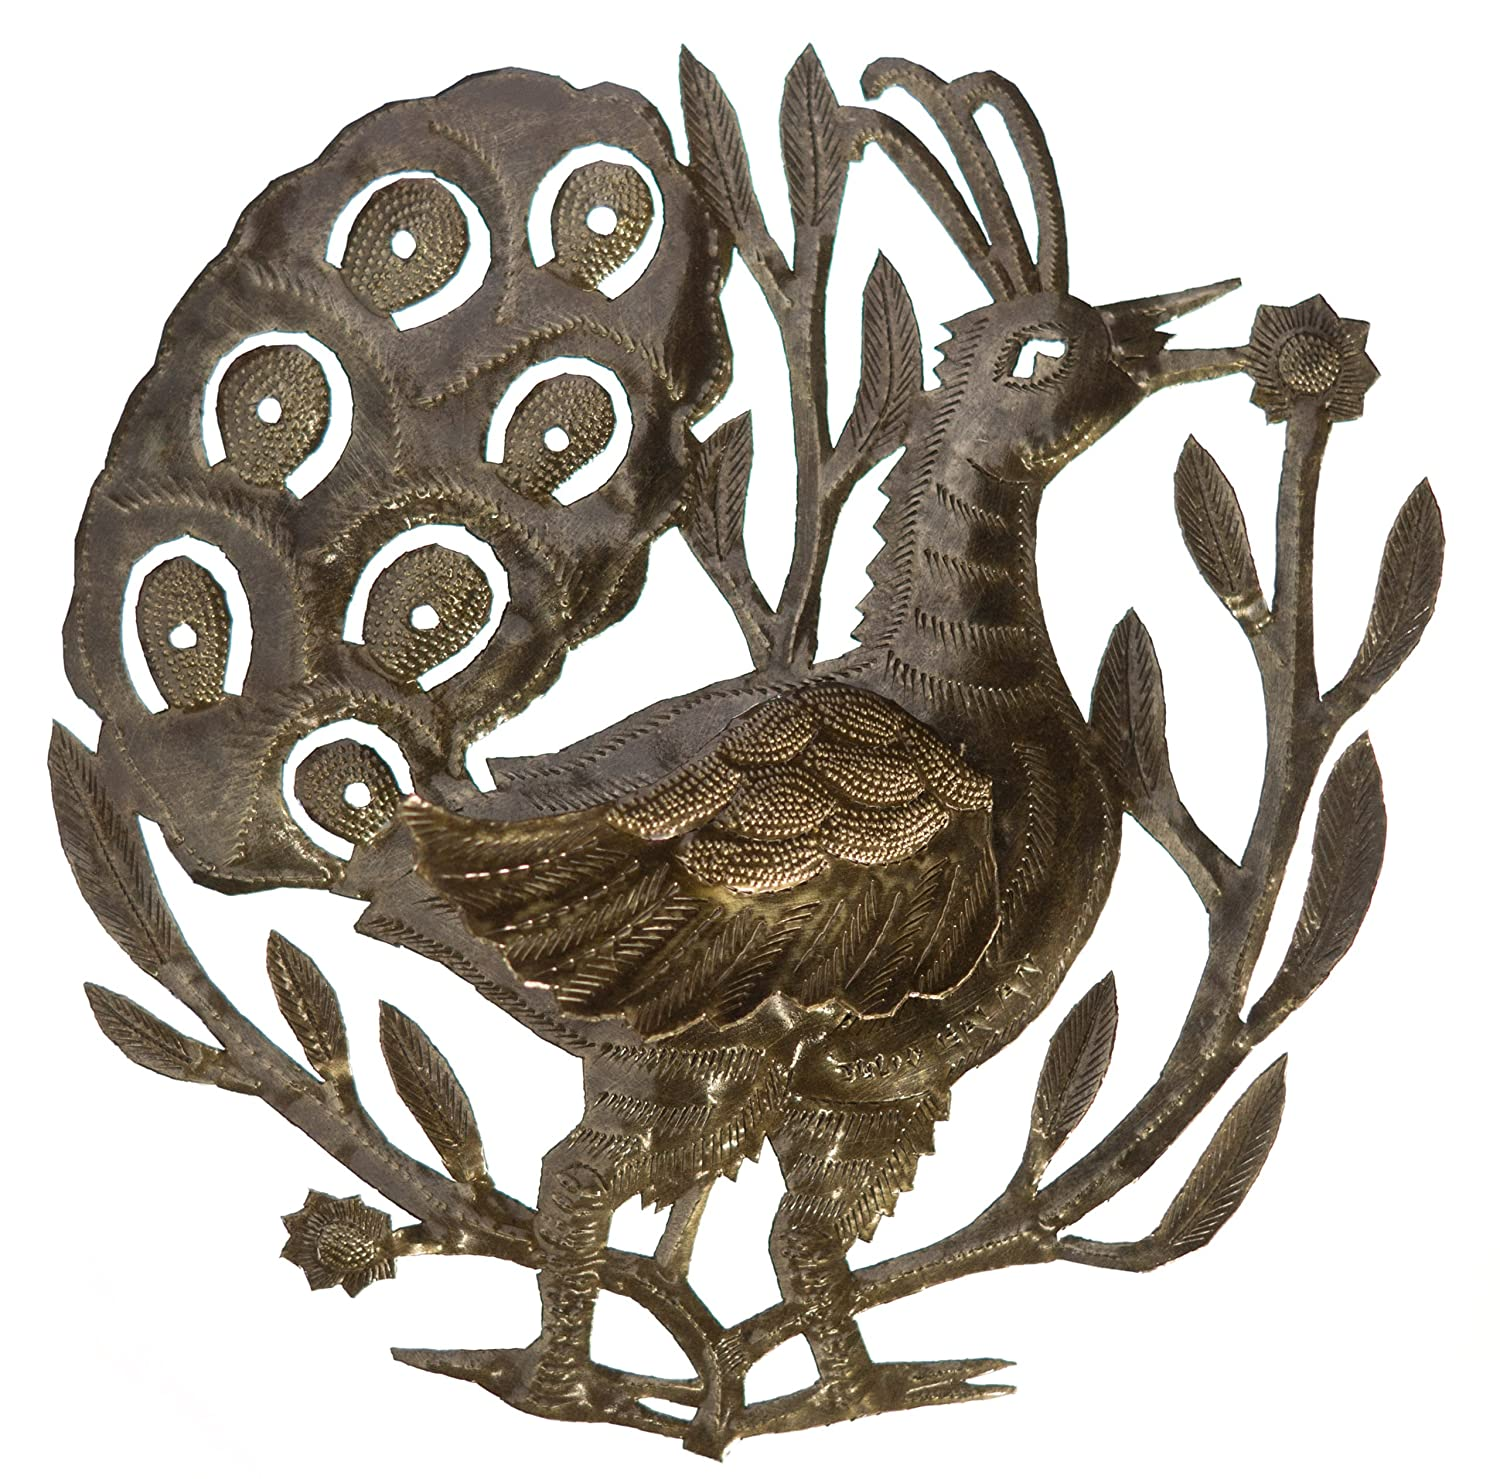 Peacock with Wing 2062 Le Primitif Galleries Haitian Recycled Steel Oil Drum Outdoor Decor 14 by 14-Inch